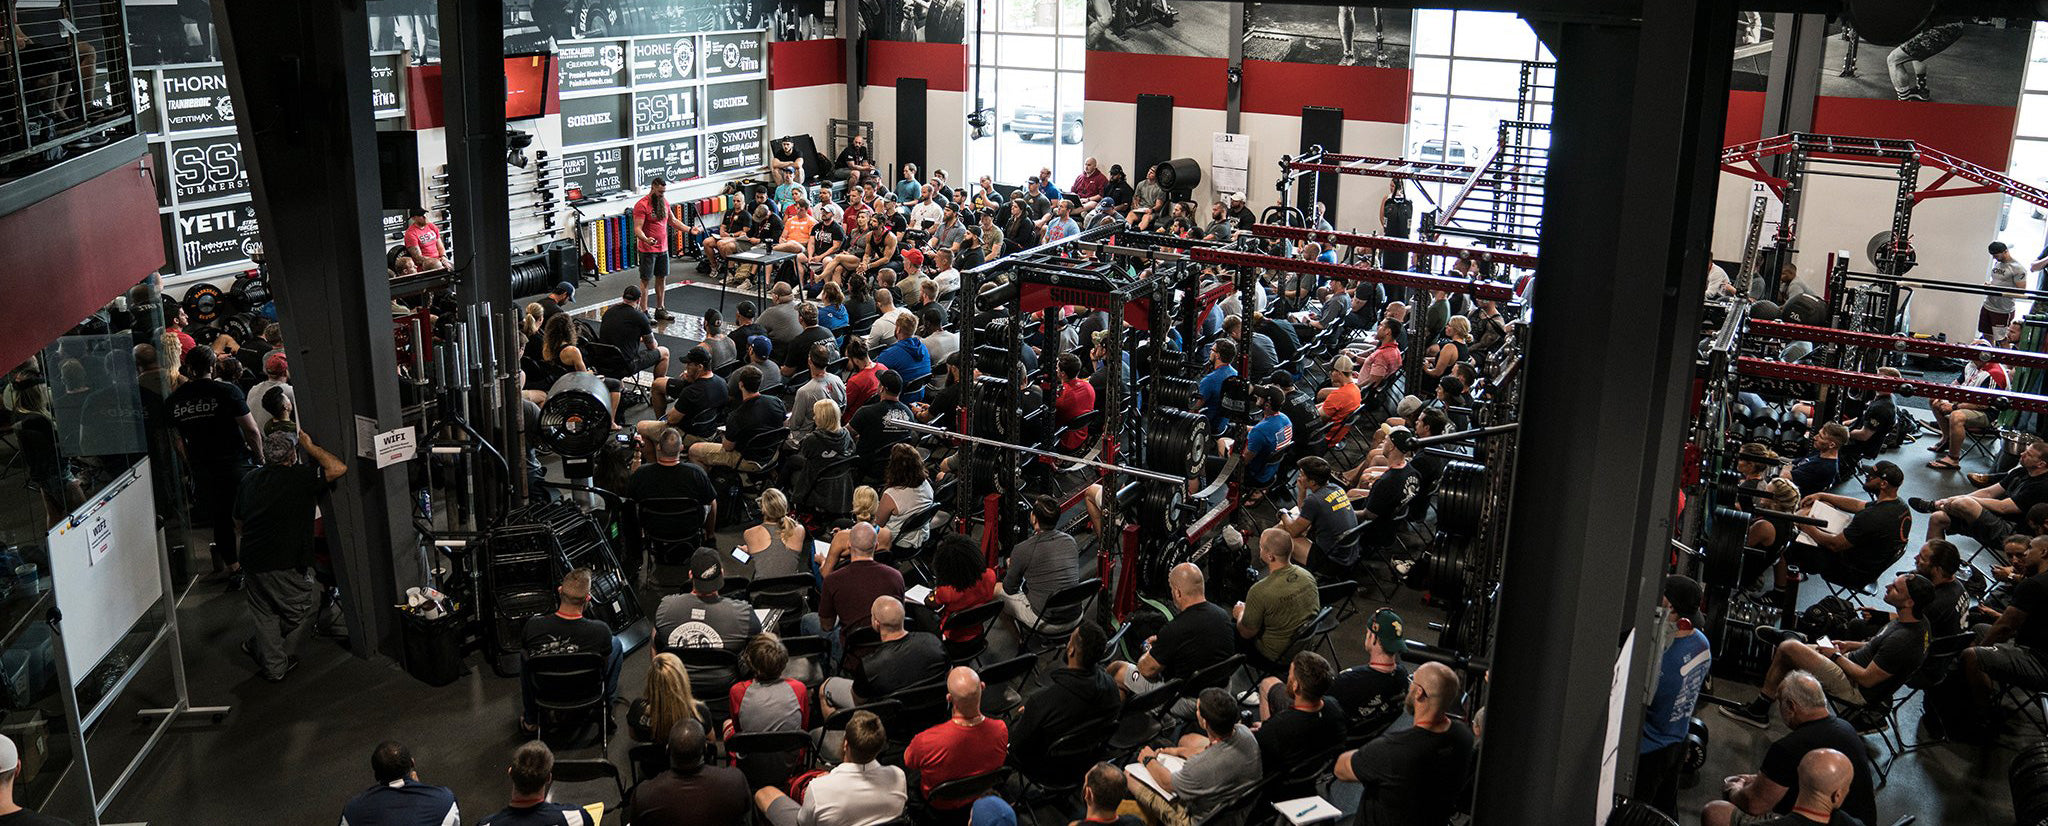 SummerStrong Weightlifting Conference Brotherhood